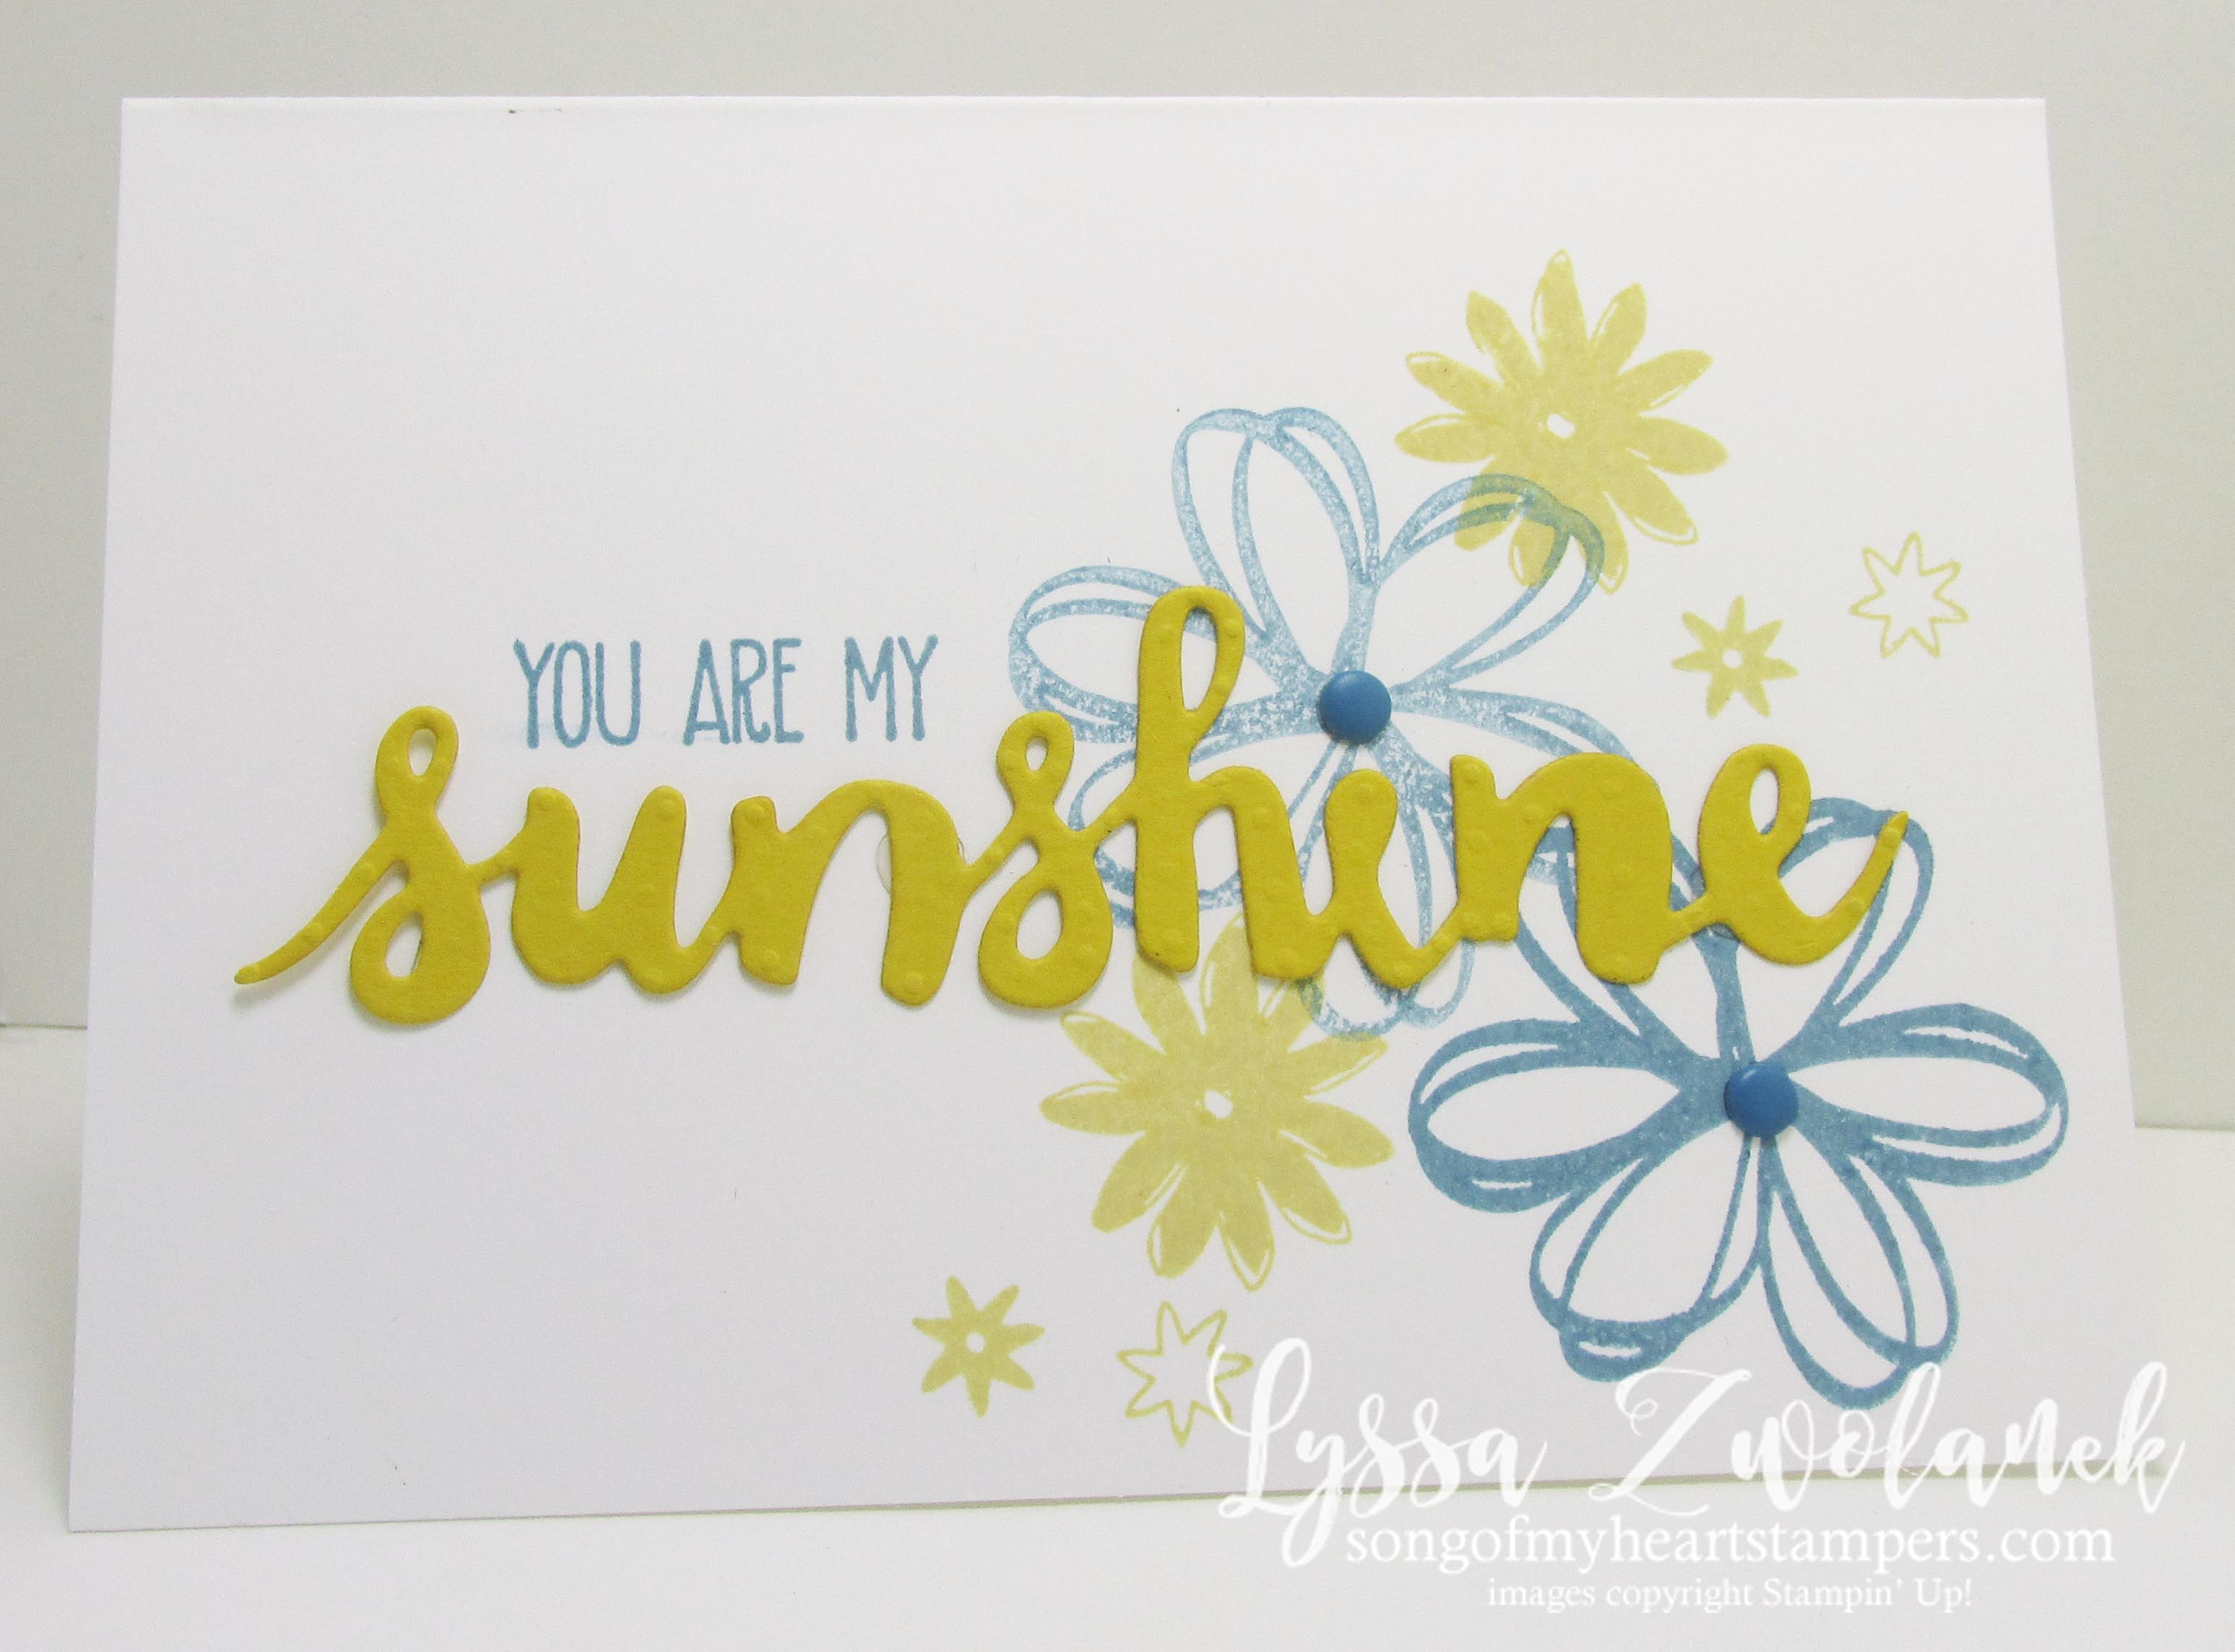 ready to make it you are my sunshine card song of my heart stampers